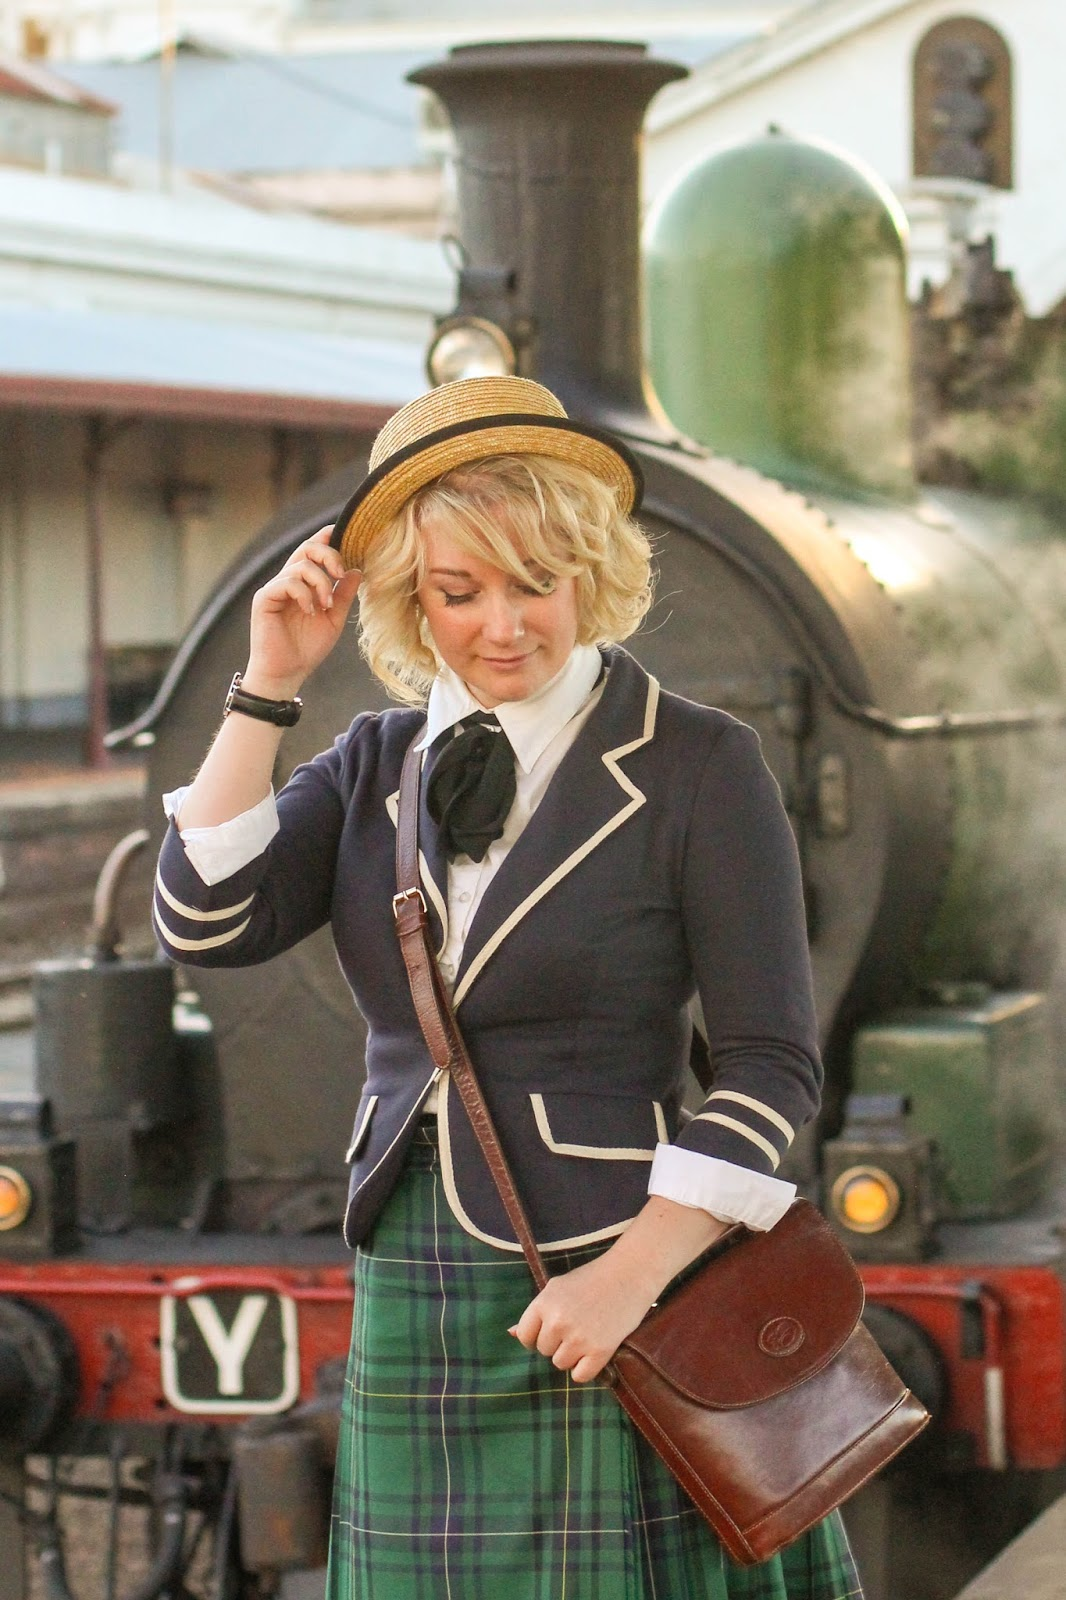 Liana of Finding Femme wears navy Modcloth Academia Ahoy blazer, black necktie, straw boater, green tartan school skirt at Ballarat Train Station for the steam train ride at Ballarat Heritage Weekend.